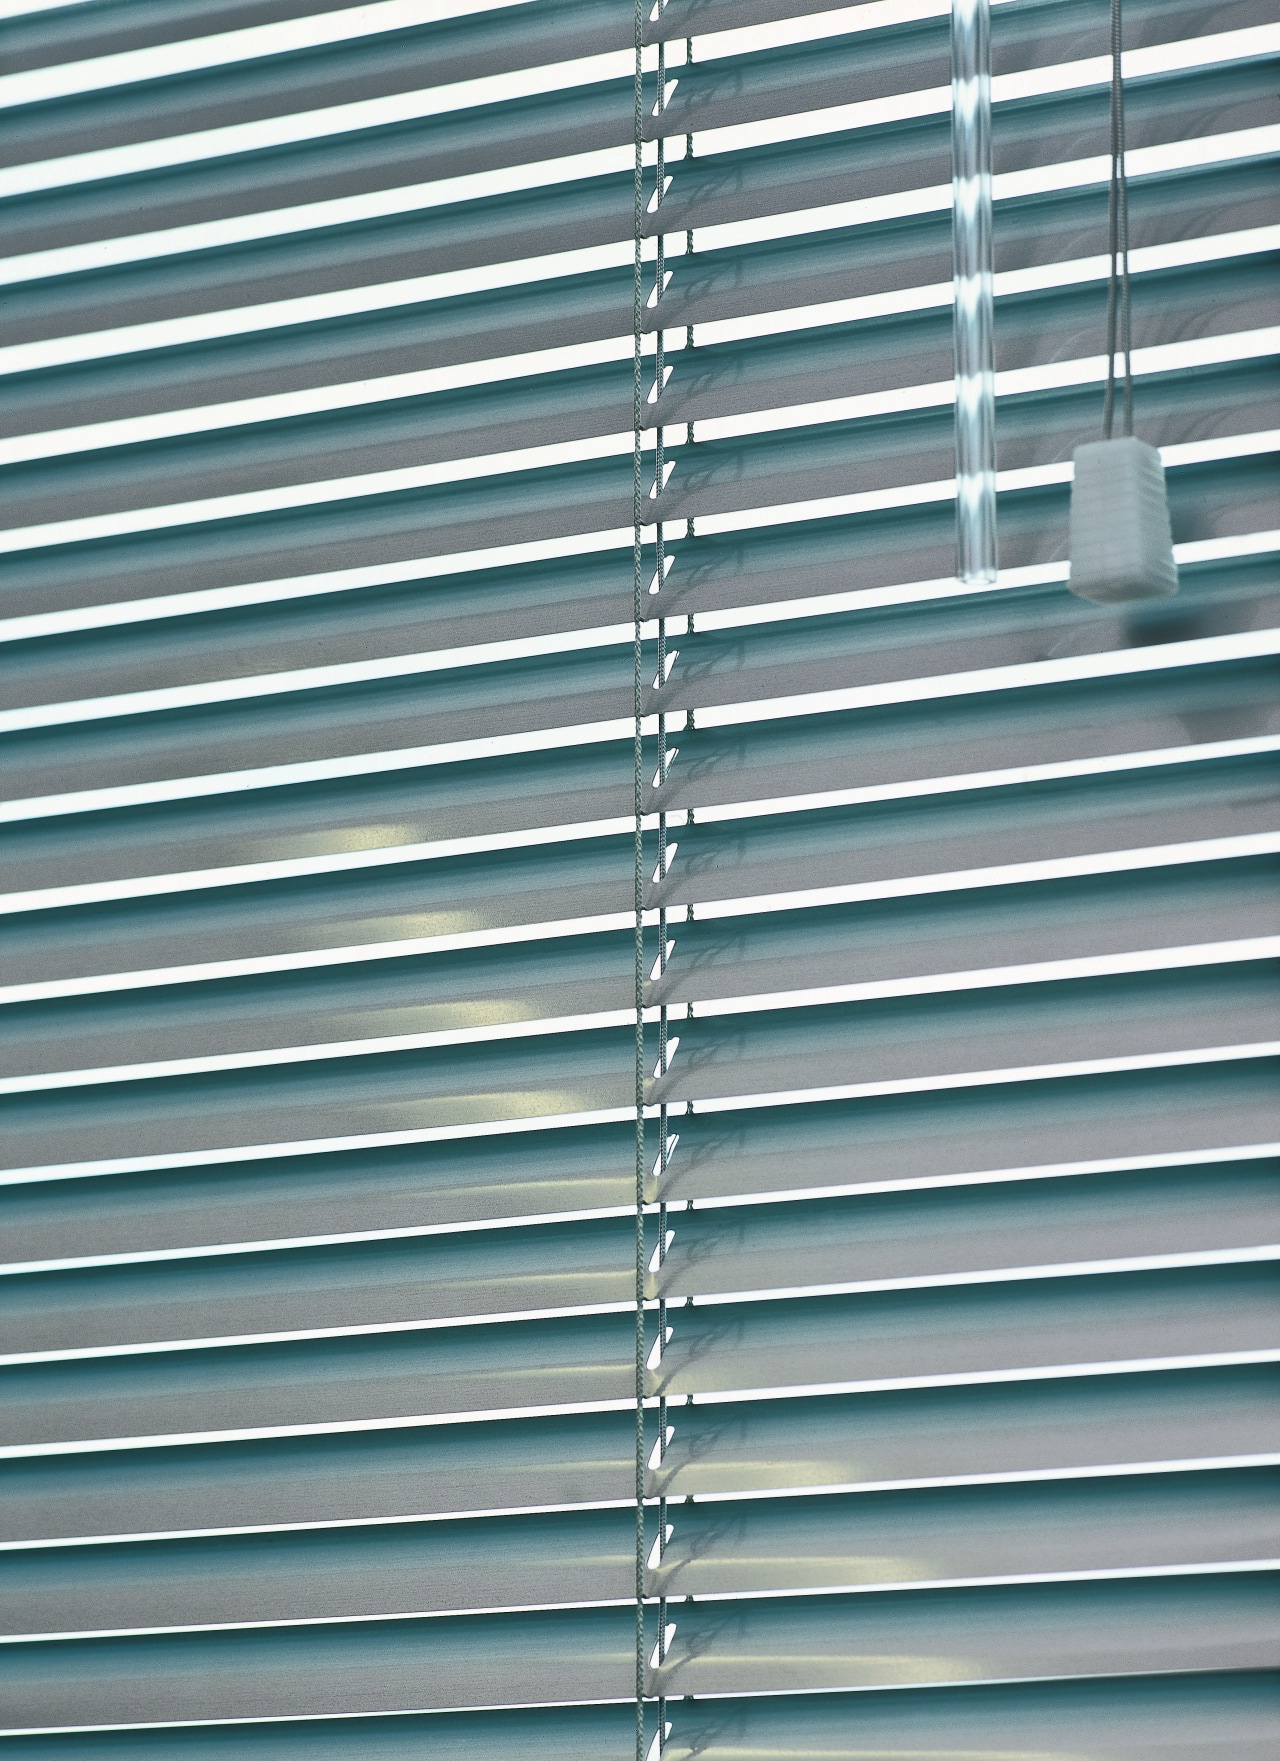 view of the uniline slimline venetian blinds architecture, daylighting, facade, line, mesh, metal, steel, window, window blind, window covering, gray, teal